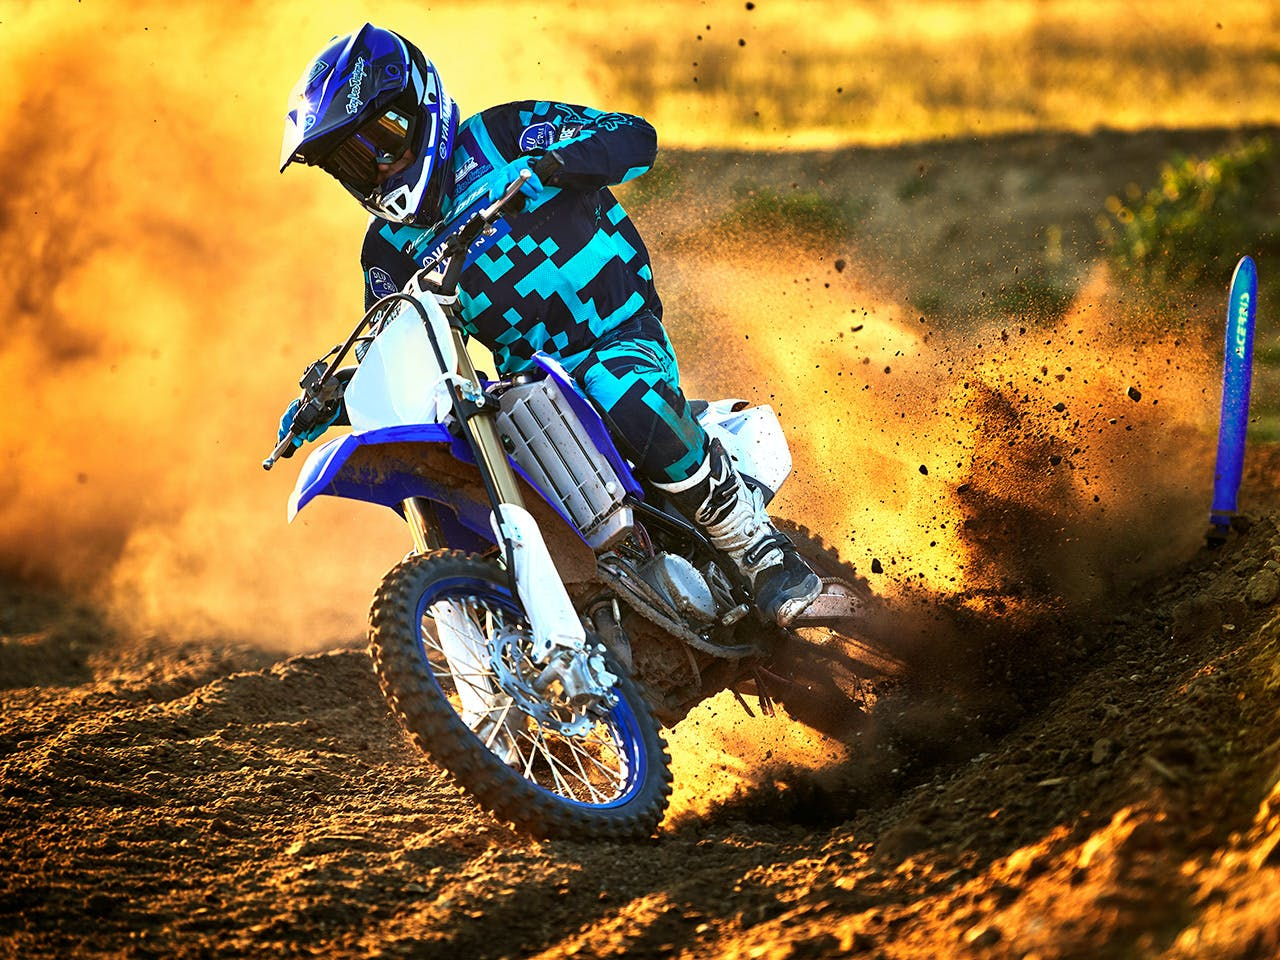 Yamaha YZ85 in team yamaha blue and white colour, being ridden off-track